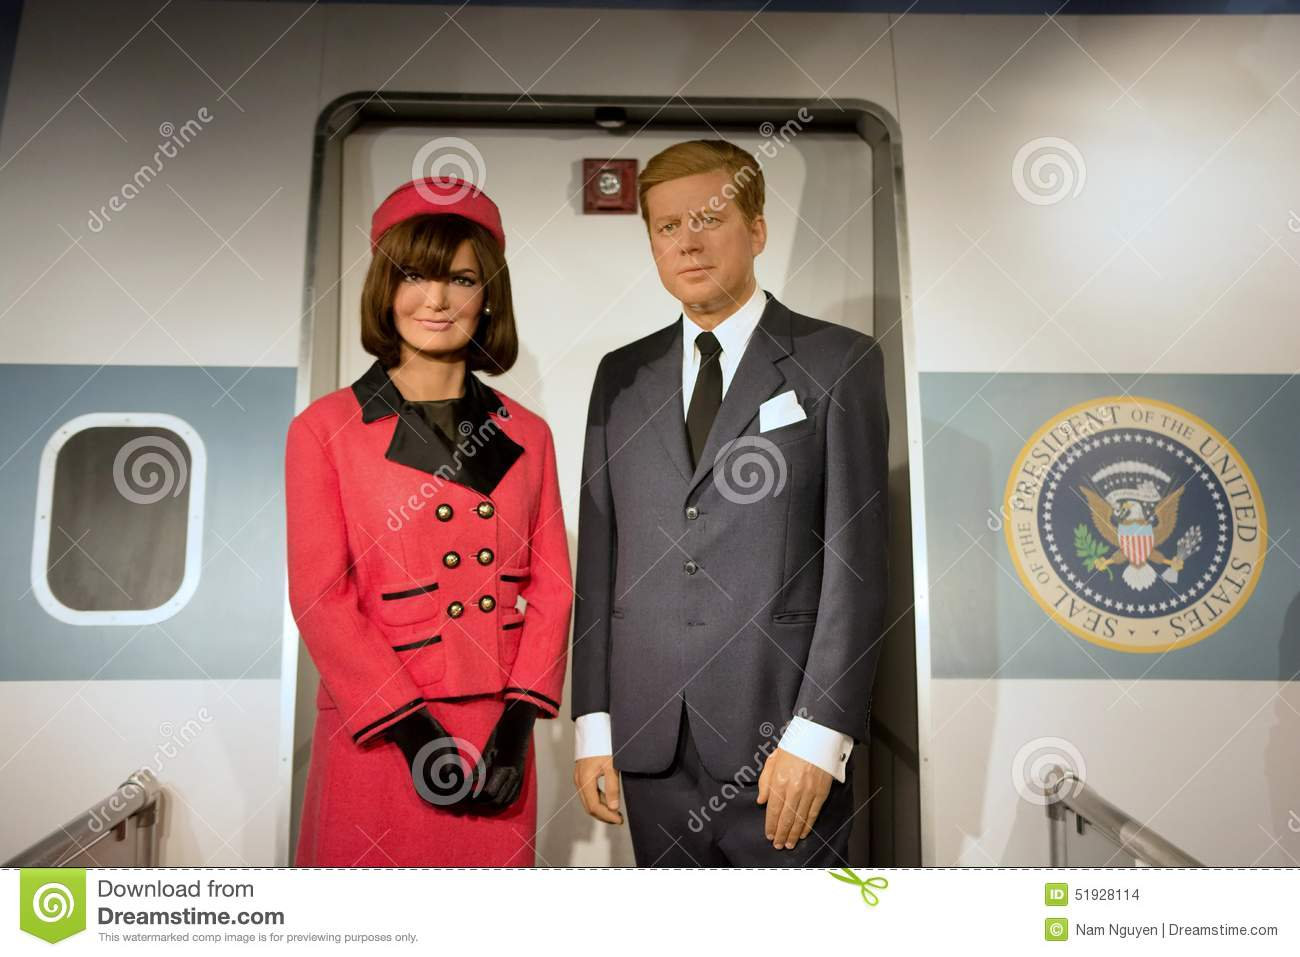 e8277e76de7 John F. Kennedy Wax Figure editorial stock image. Image of united ...